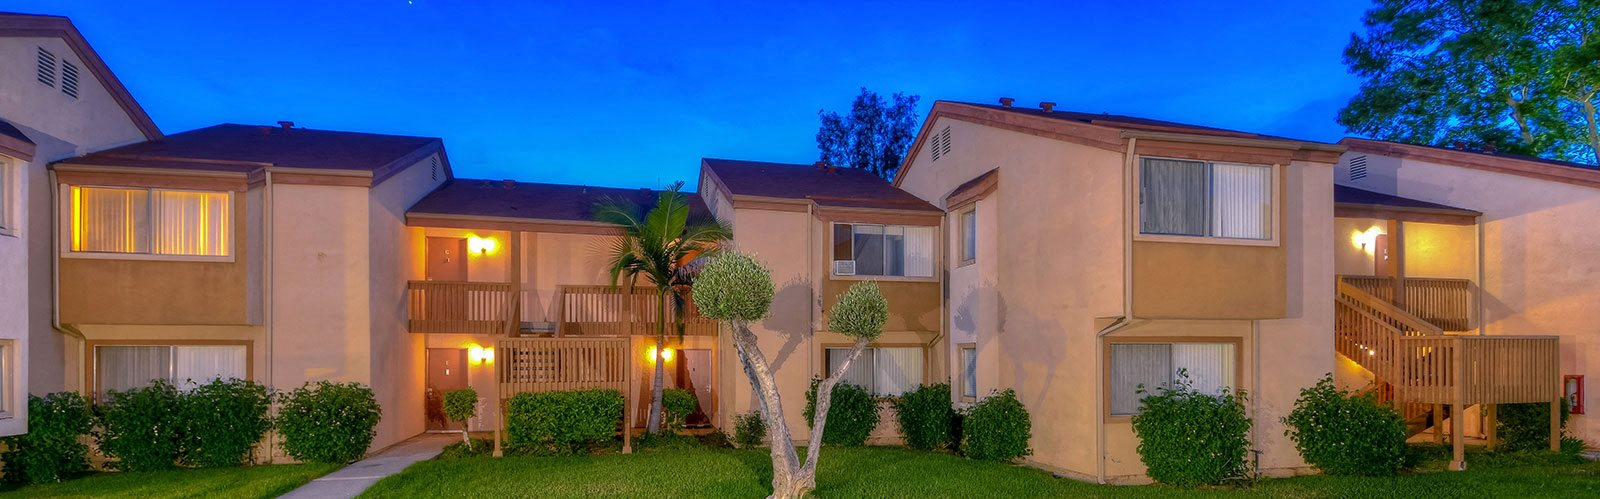 Exterior View Of Property at WOODSIDE VILLAGE, West Covina, 91792